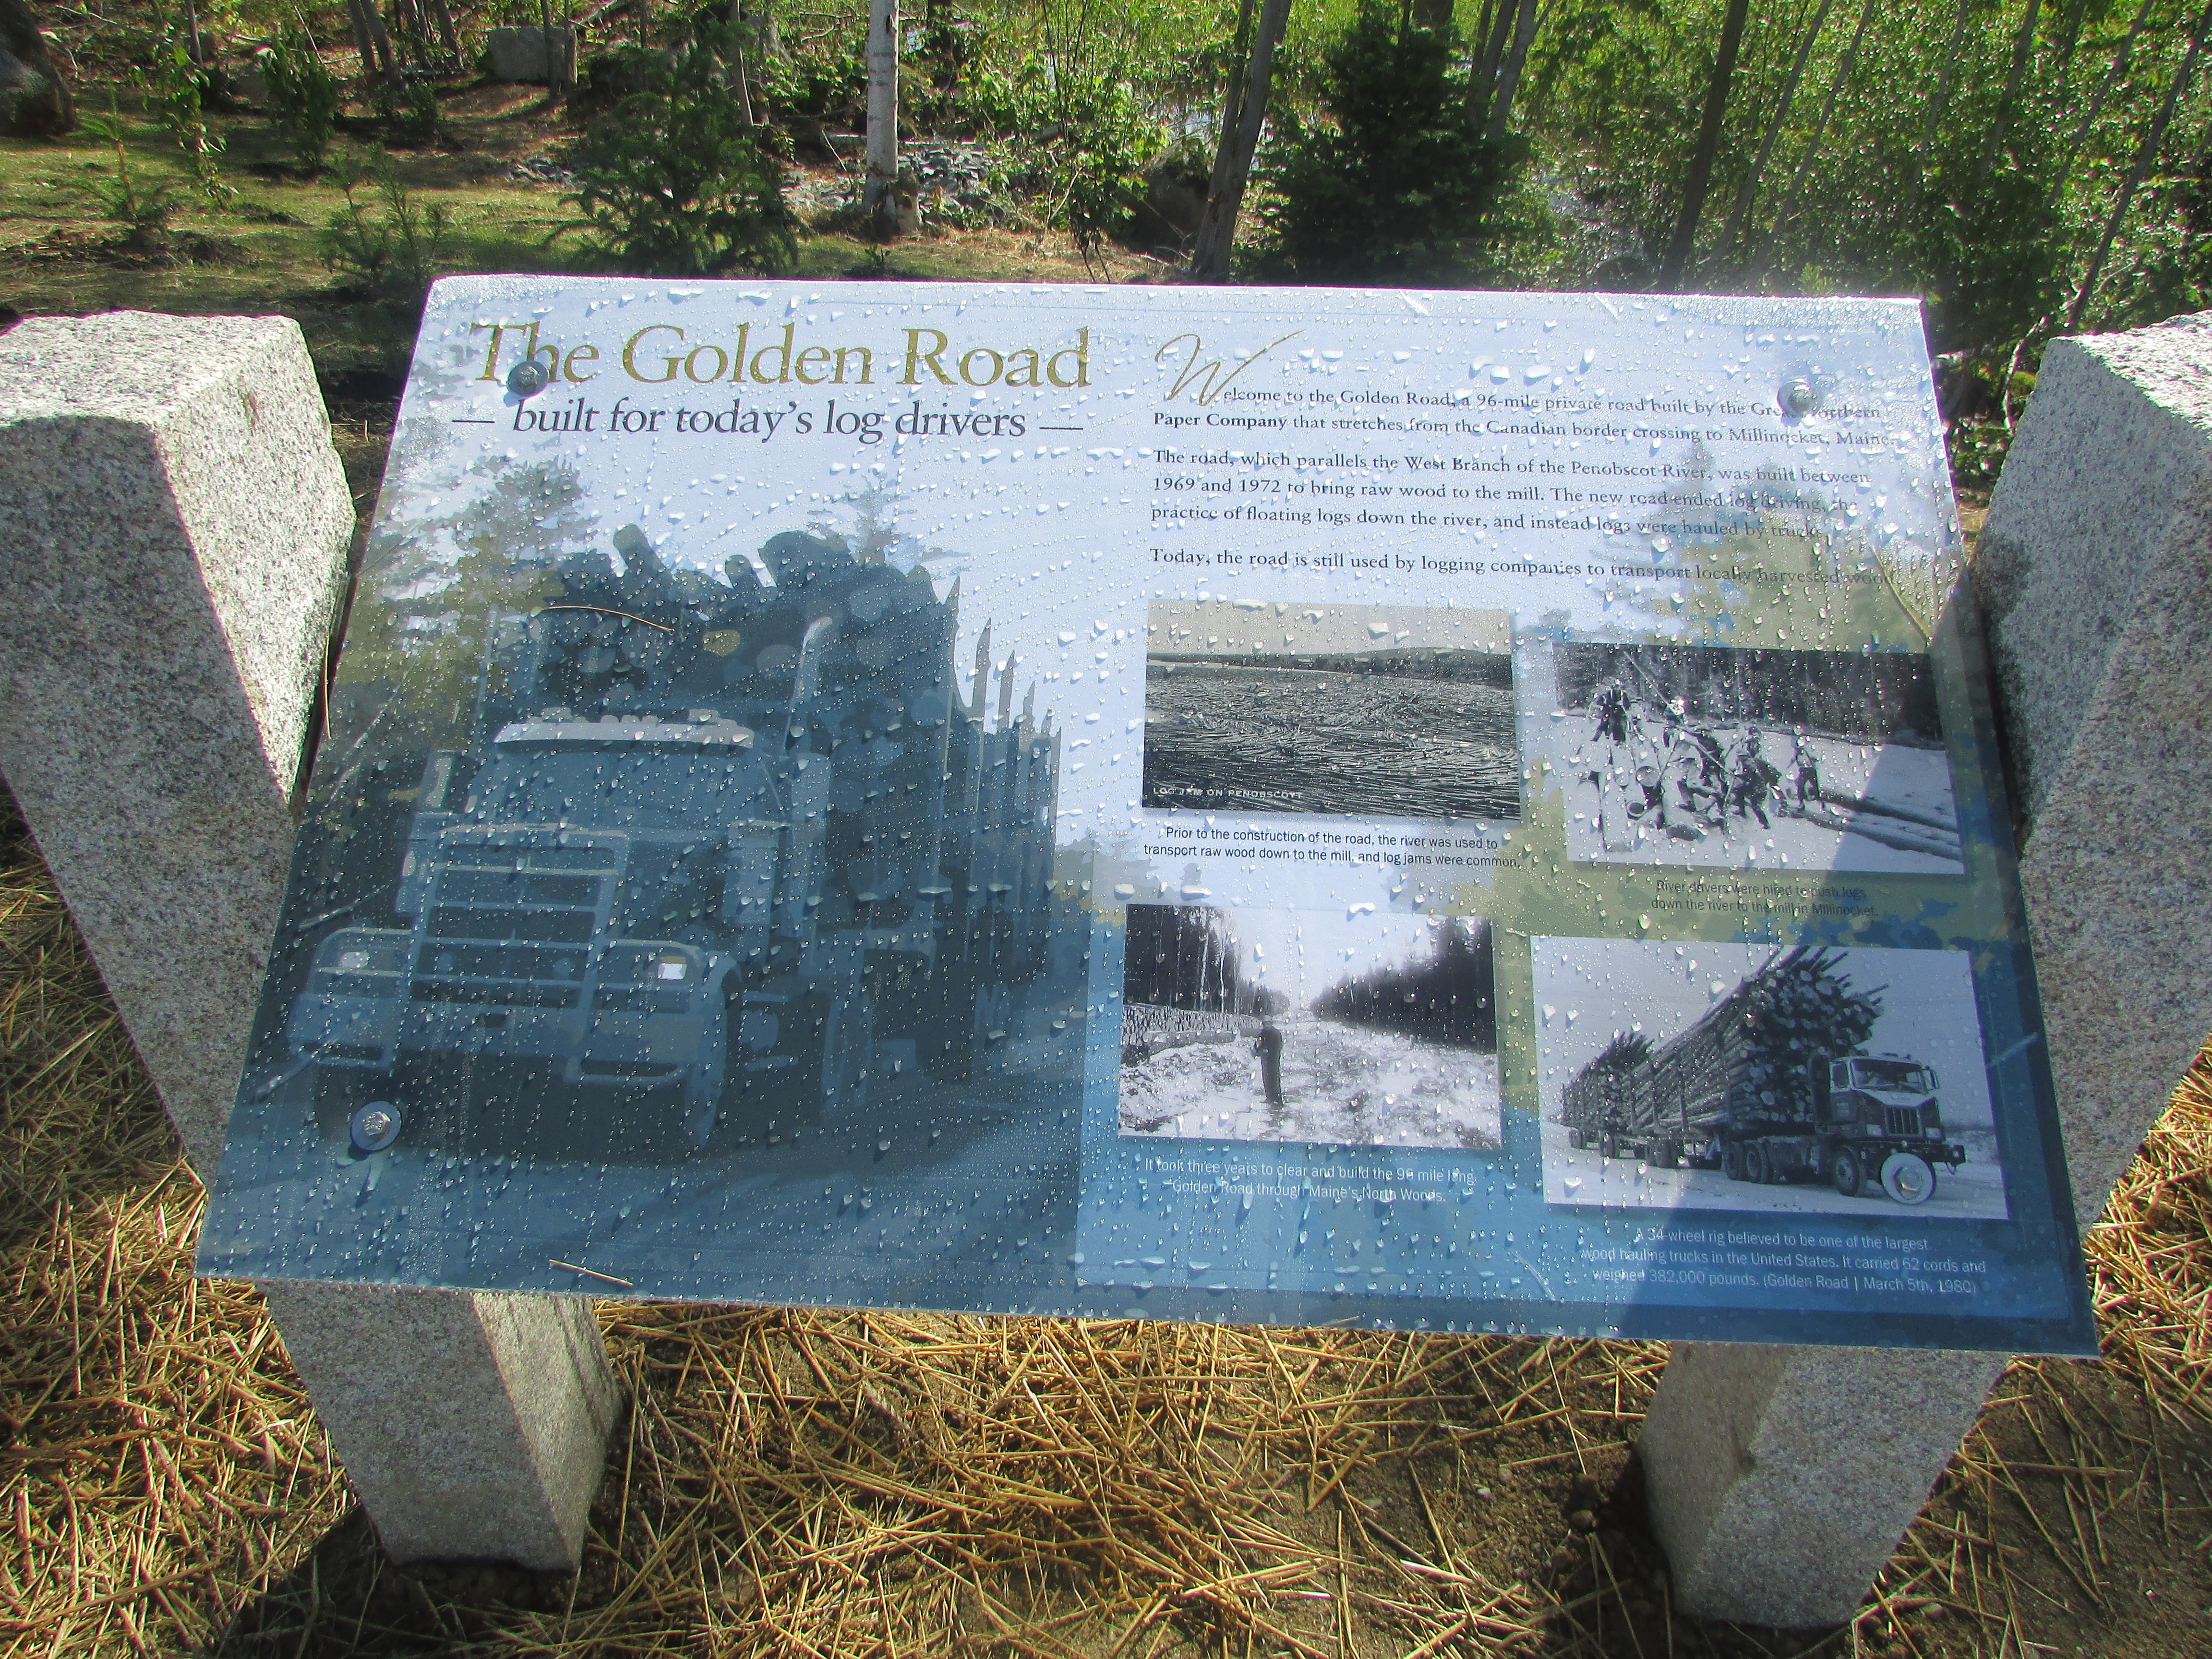 The Golden Road Marker